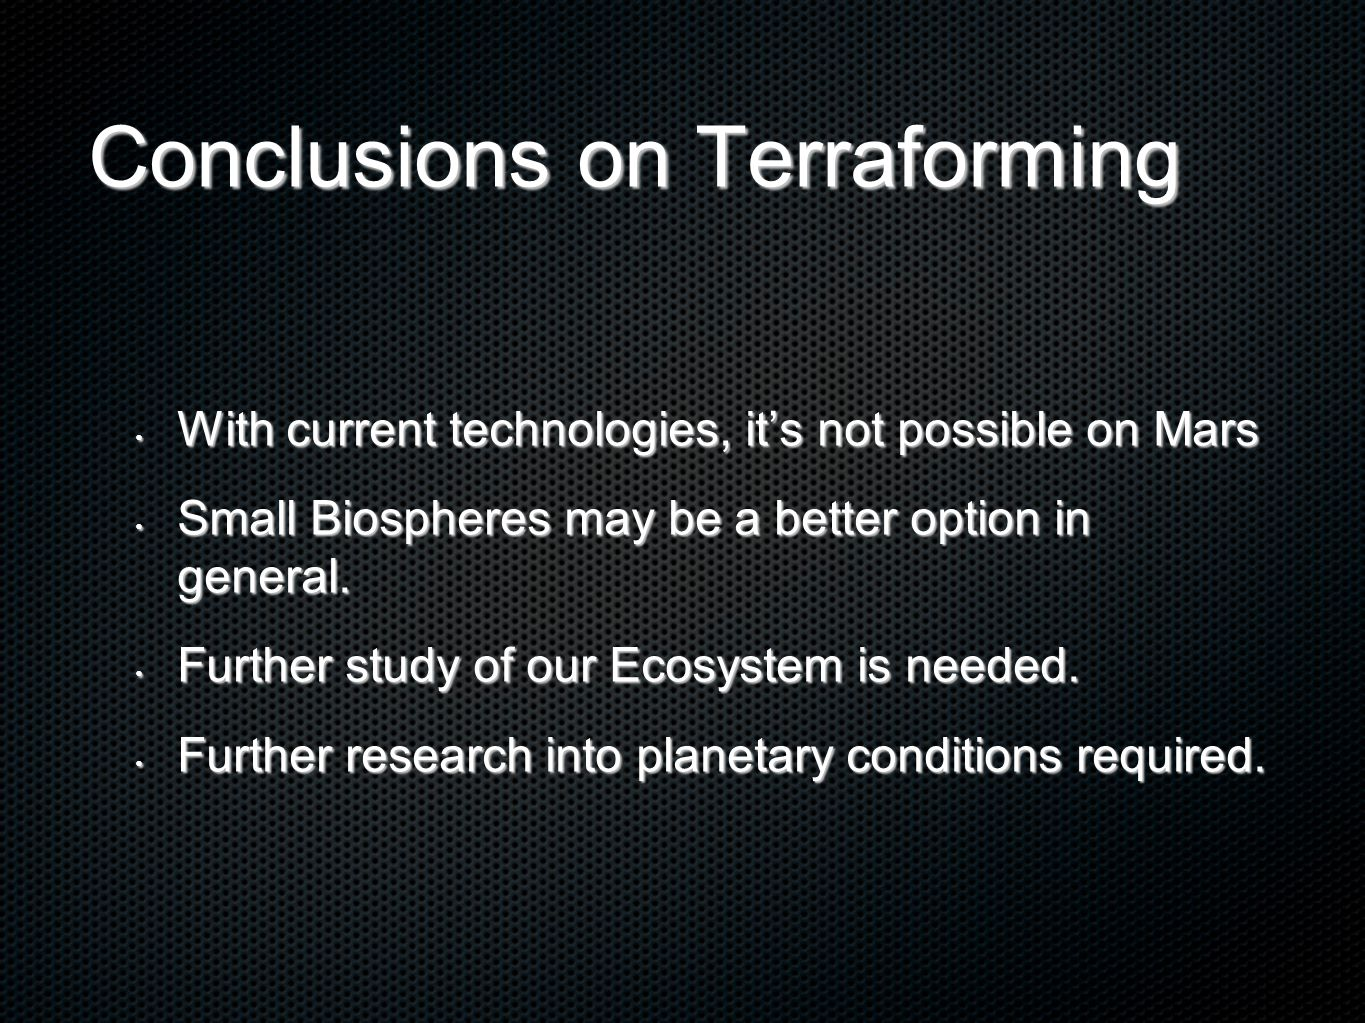 Conclusions on Terraforming With current technologies, it's not possible on Mars With current technologies, it's not possible on Mars Small Biospheres may be a better option in general.